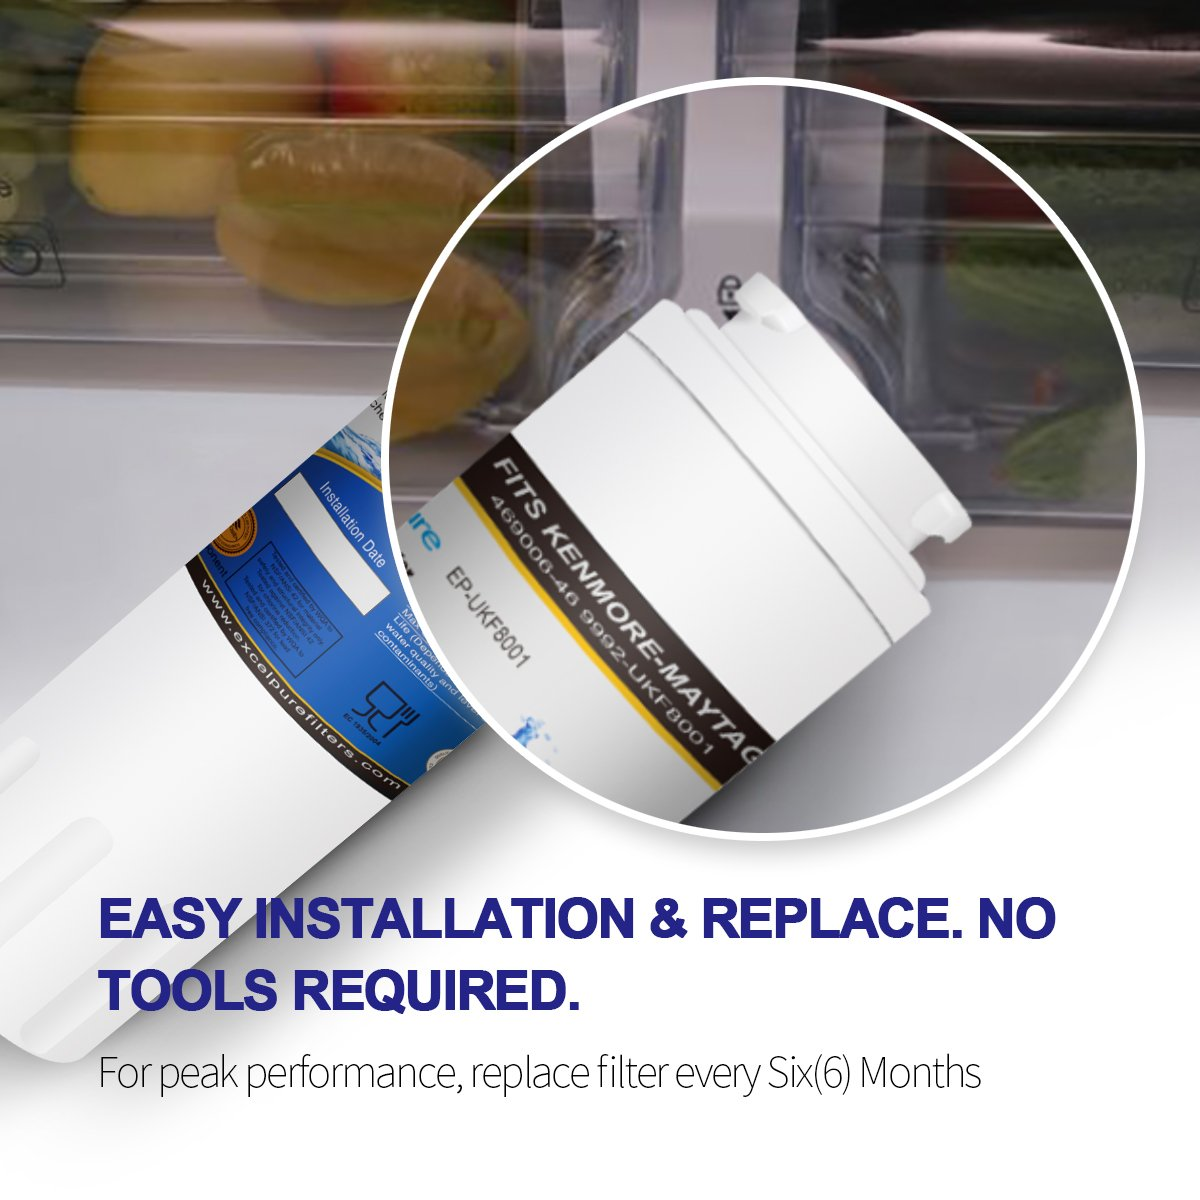 Excelpure Refrigerator Water Filter Replacement Cartridge for Maytag UKF8001, UKF-8001P, Kenmore 469006, 469992, Amana UKF8001AXX (2 PACK) by EXCELPURE (Image #4)